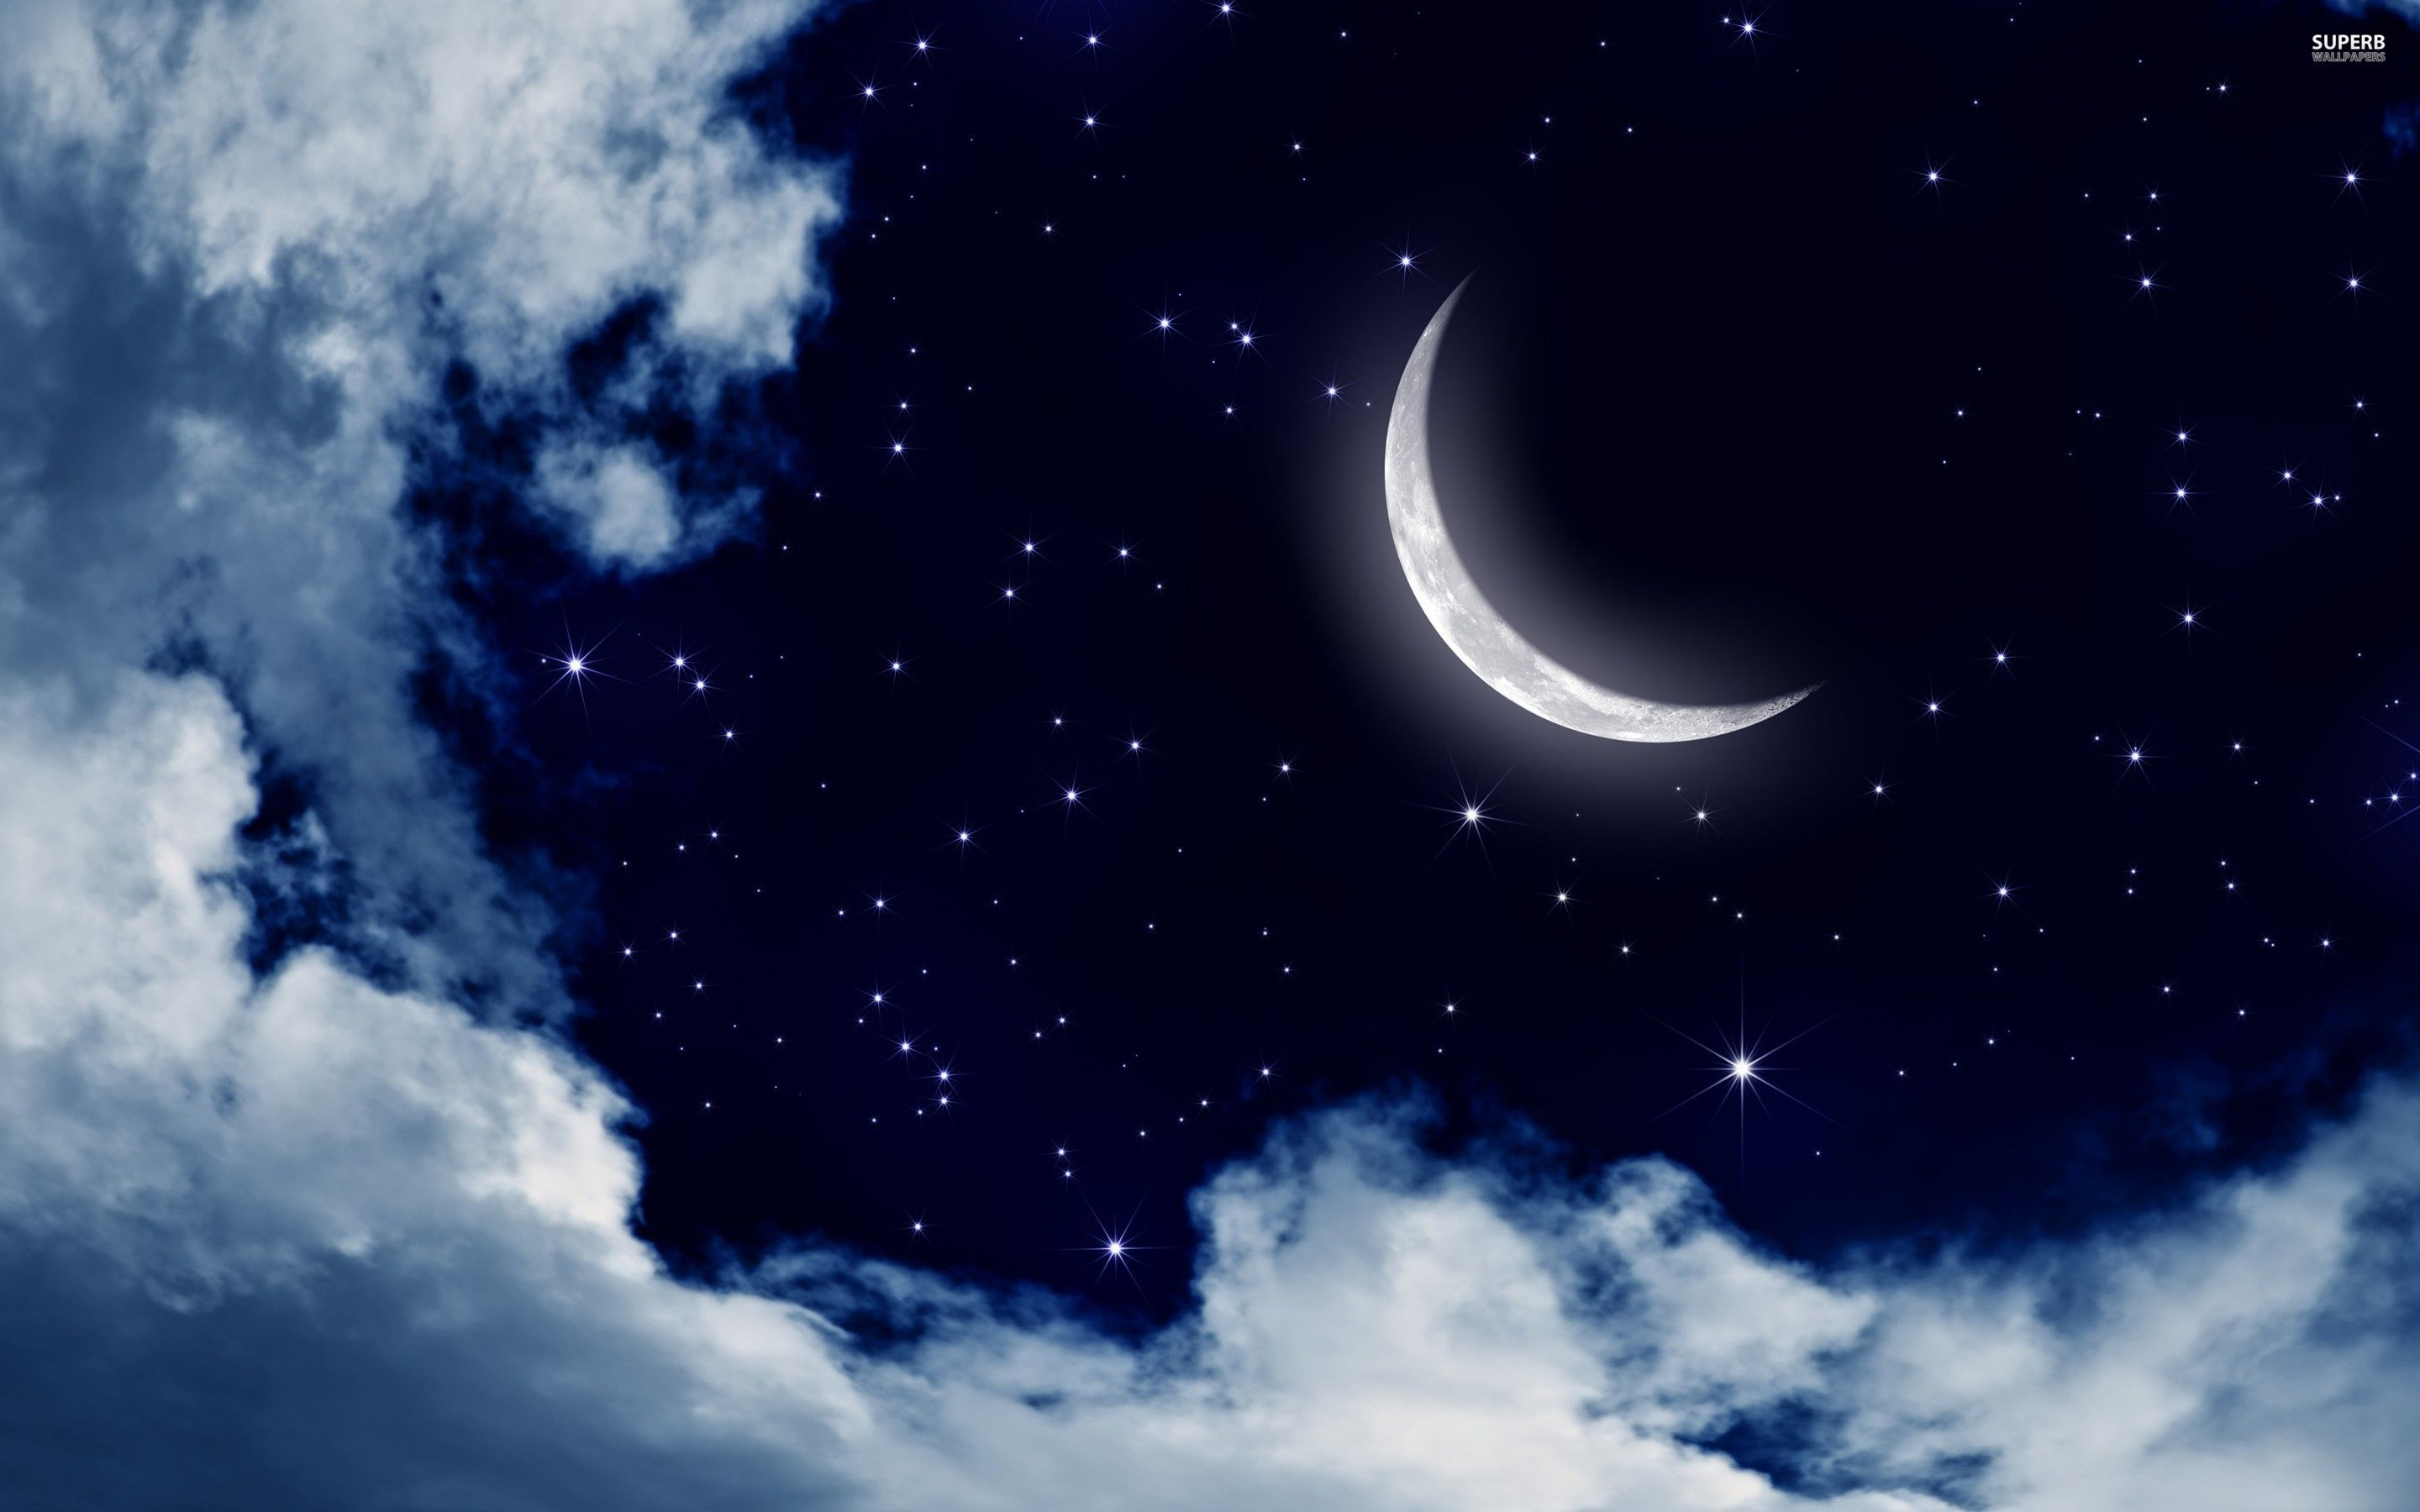 Desktop Images Of Stars And Moons Download Jpg 2880 1800 Moon And Stars Wallpaper Stars And Moon Sky Moon